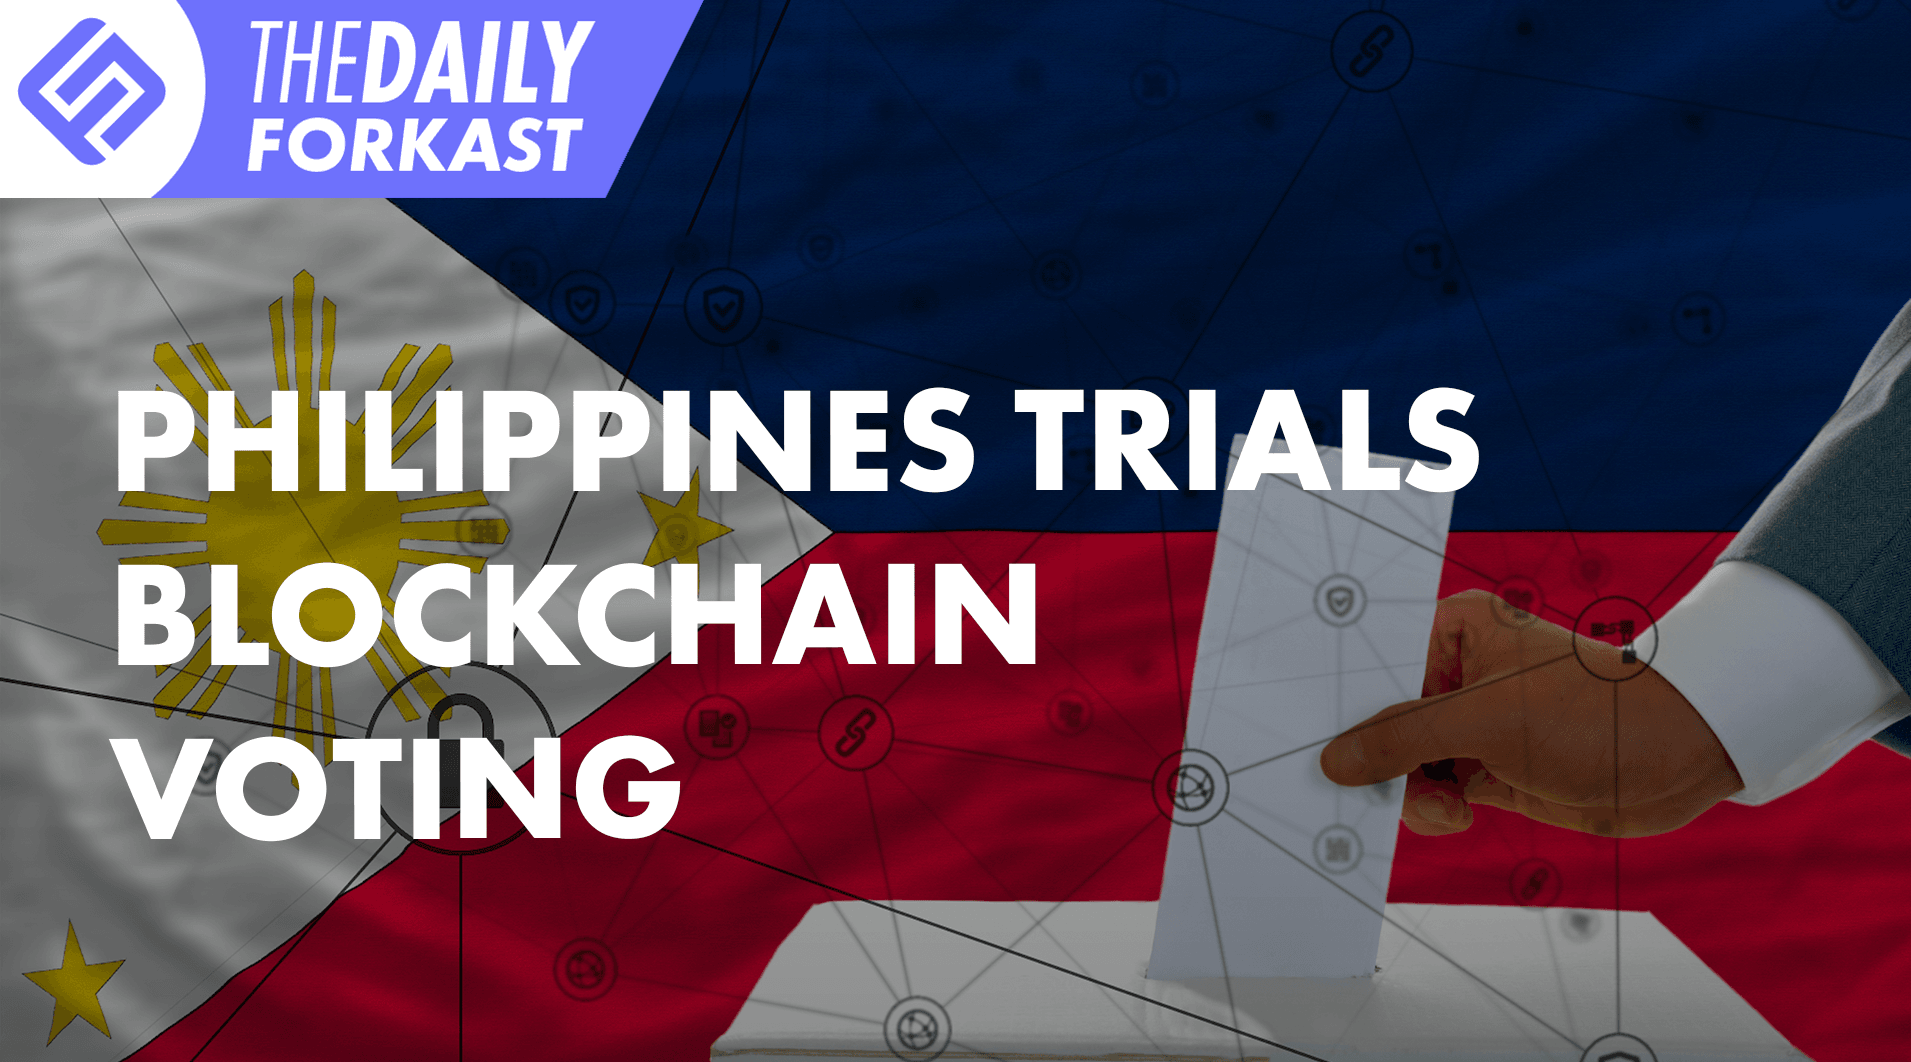 Philippines trials blockchain voting; Byron Bay to host crypto mining